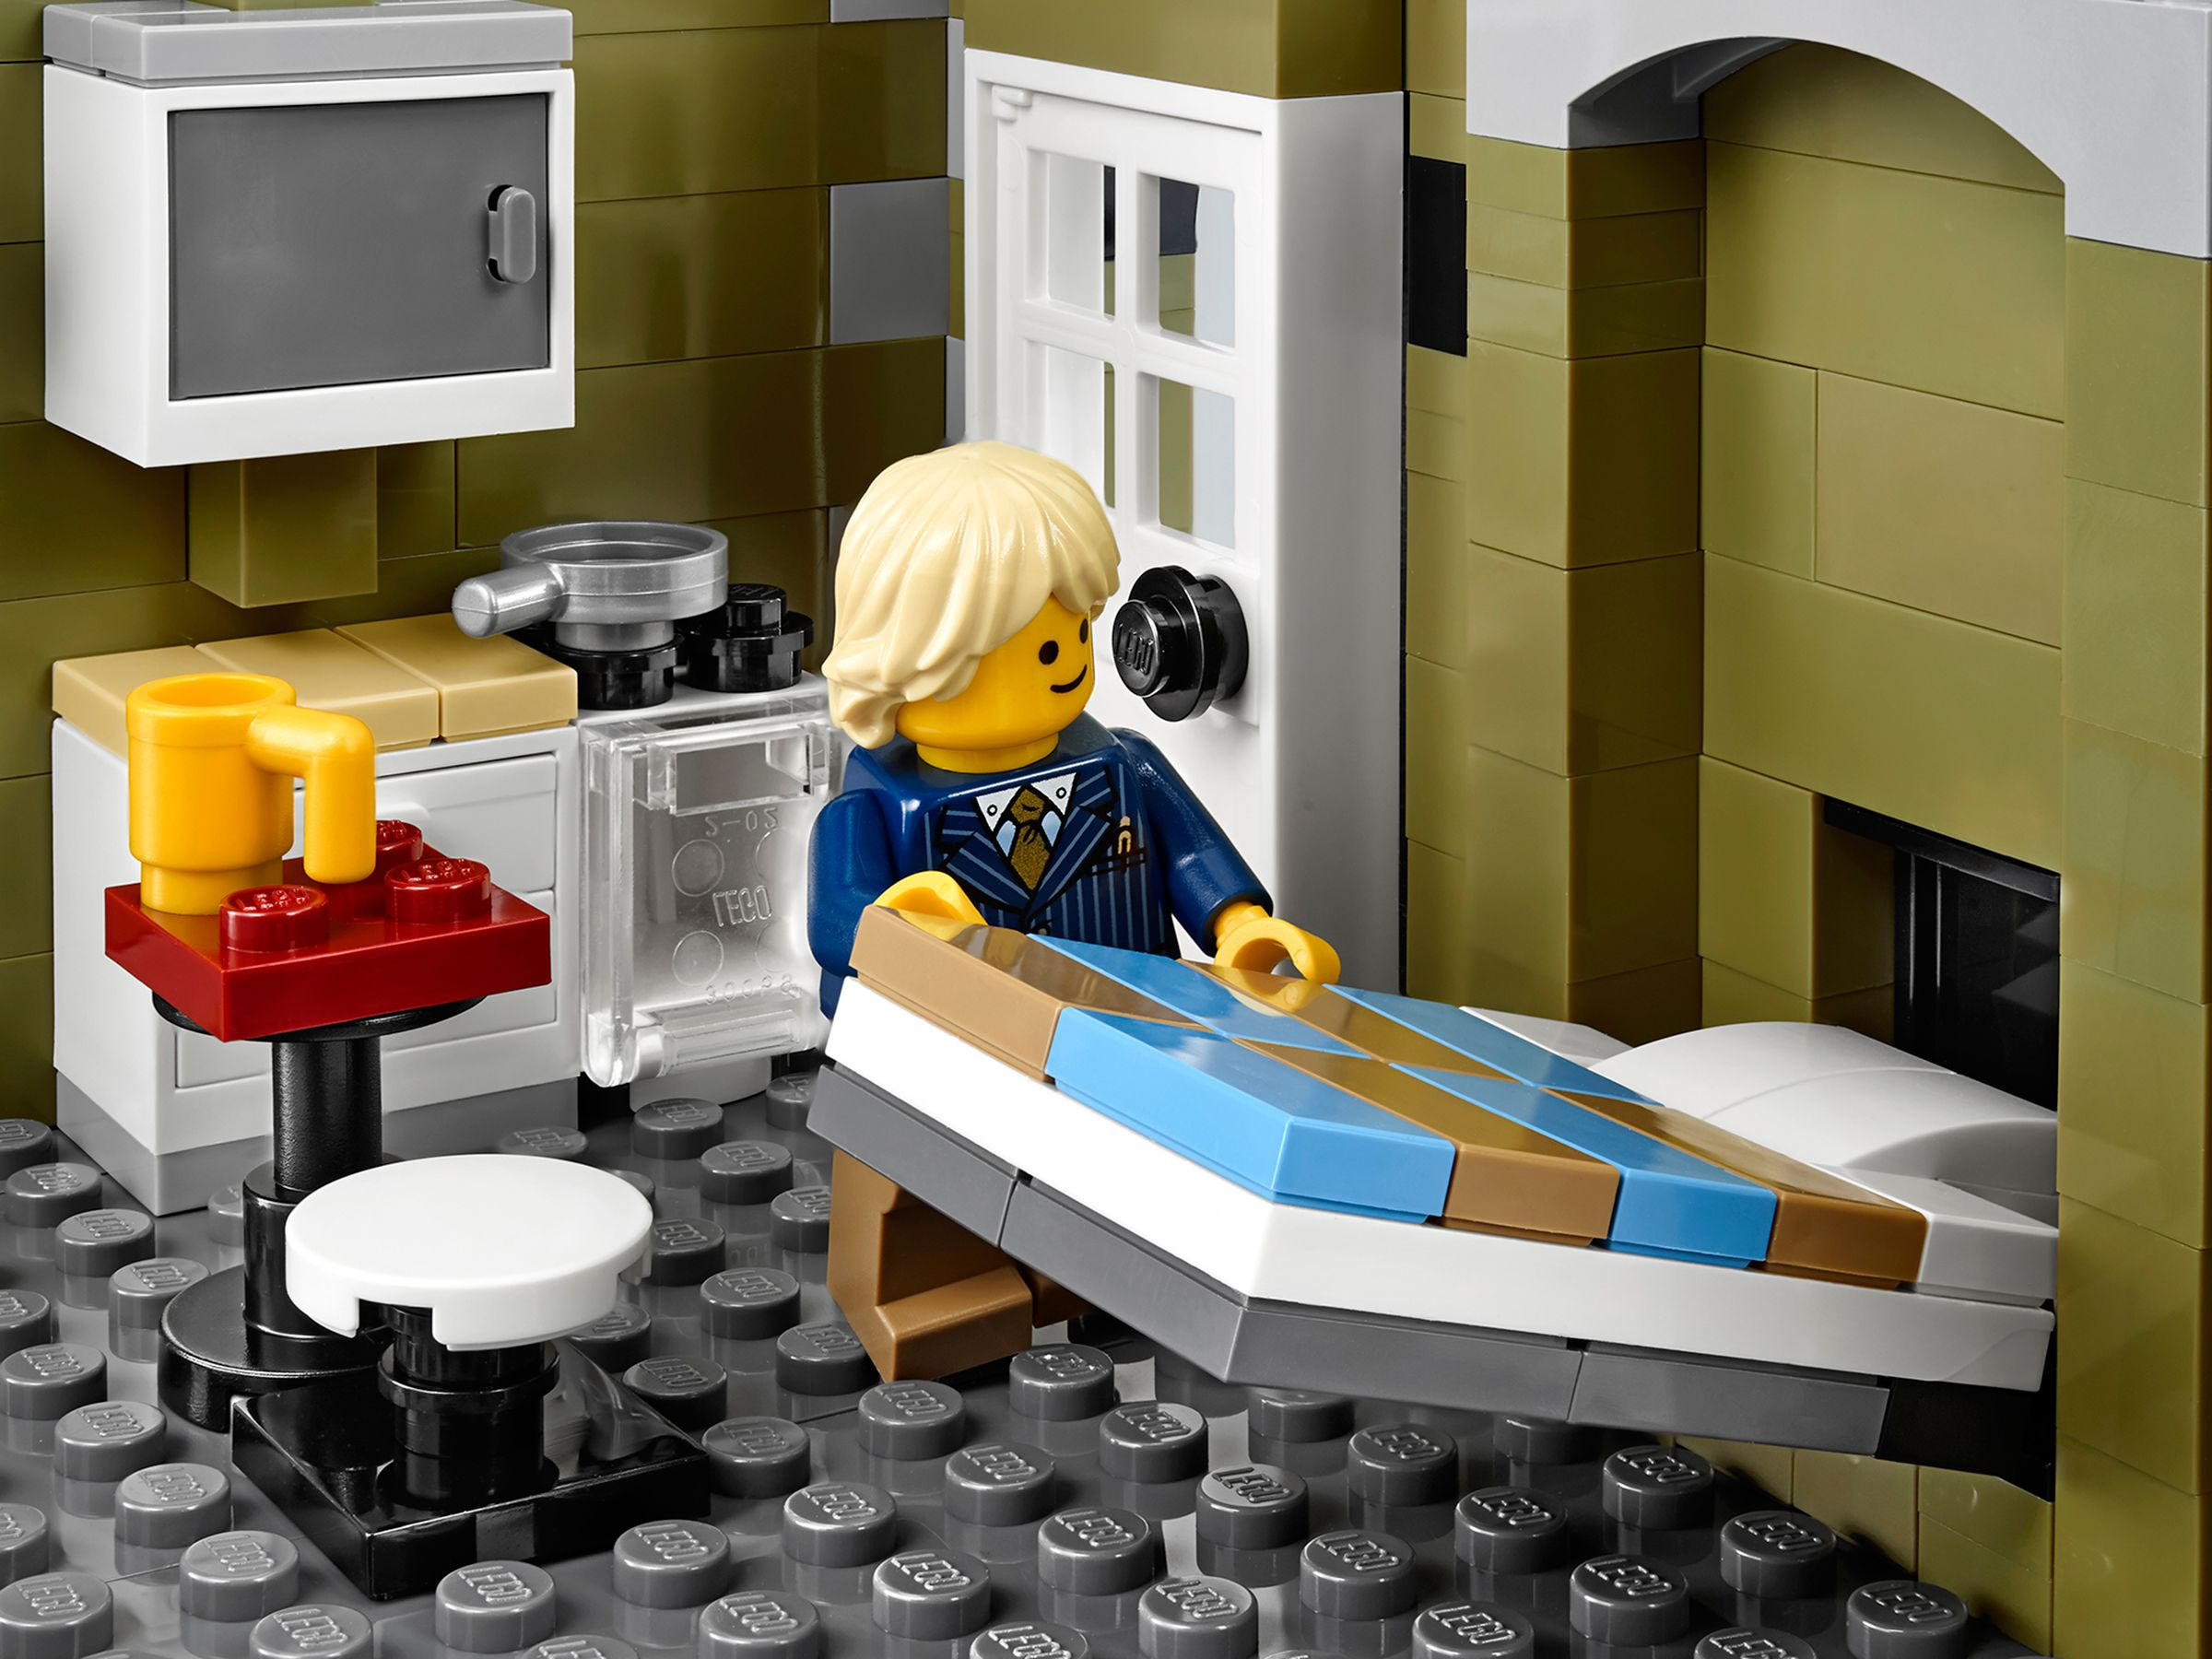 LEGO Advanced Models 10243 Pariser Restaurant LEGO_10243_alt9.jpg